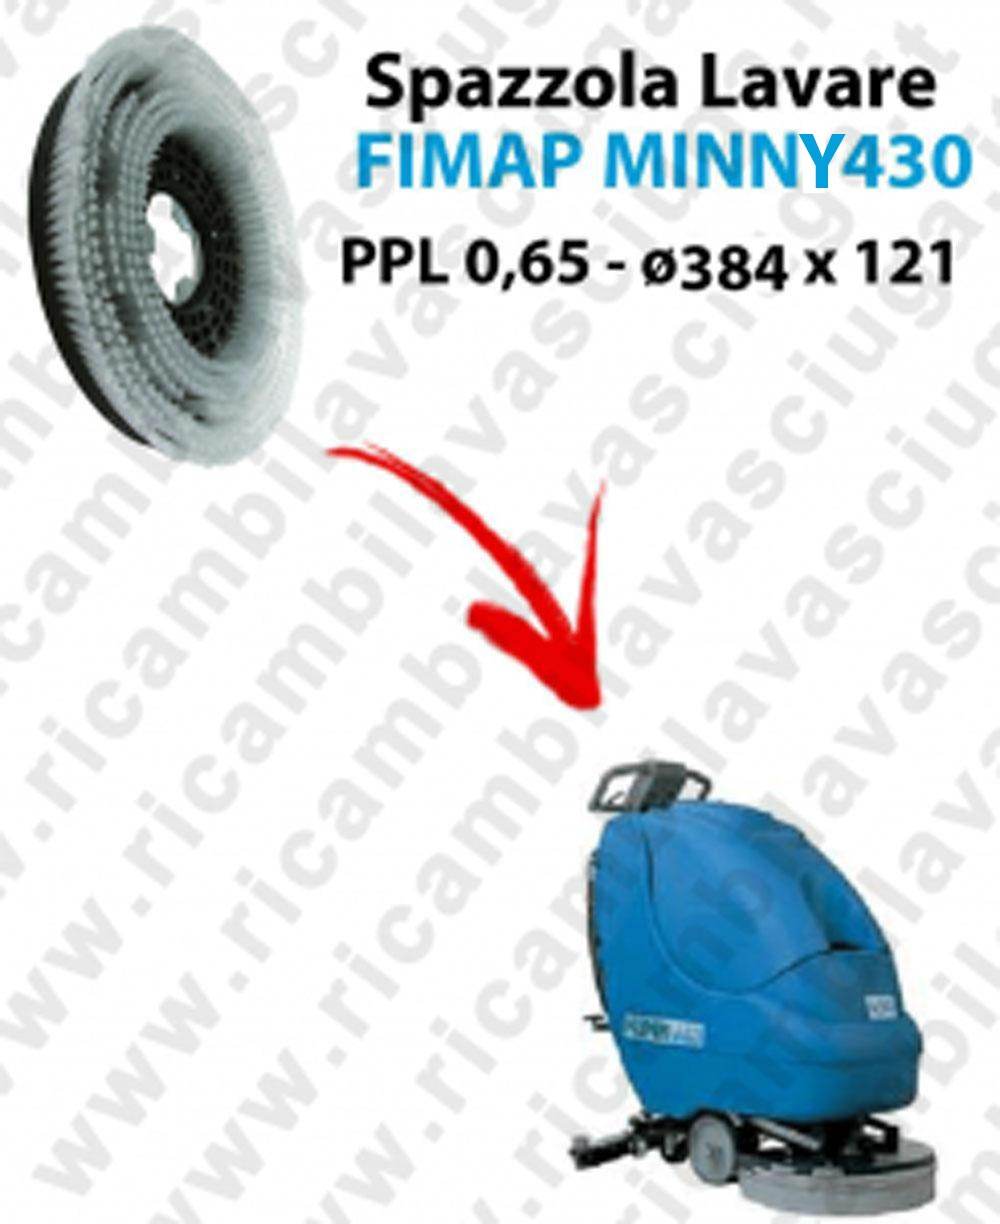 Cleaning Brush for scrubber dryer FIMAP MINNY 430. Model: PPL 0,65  ⌀384 X 121